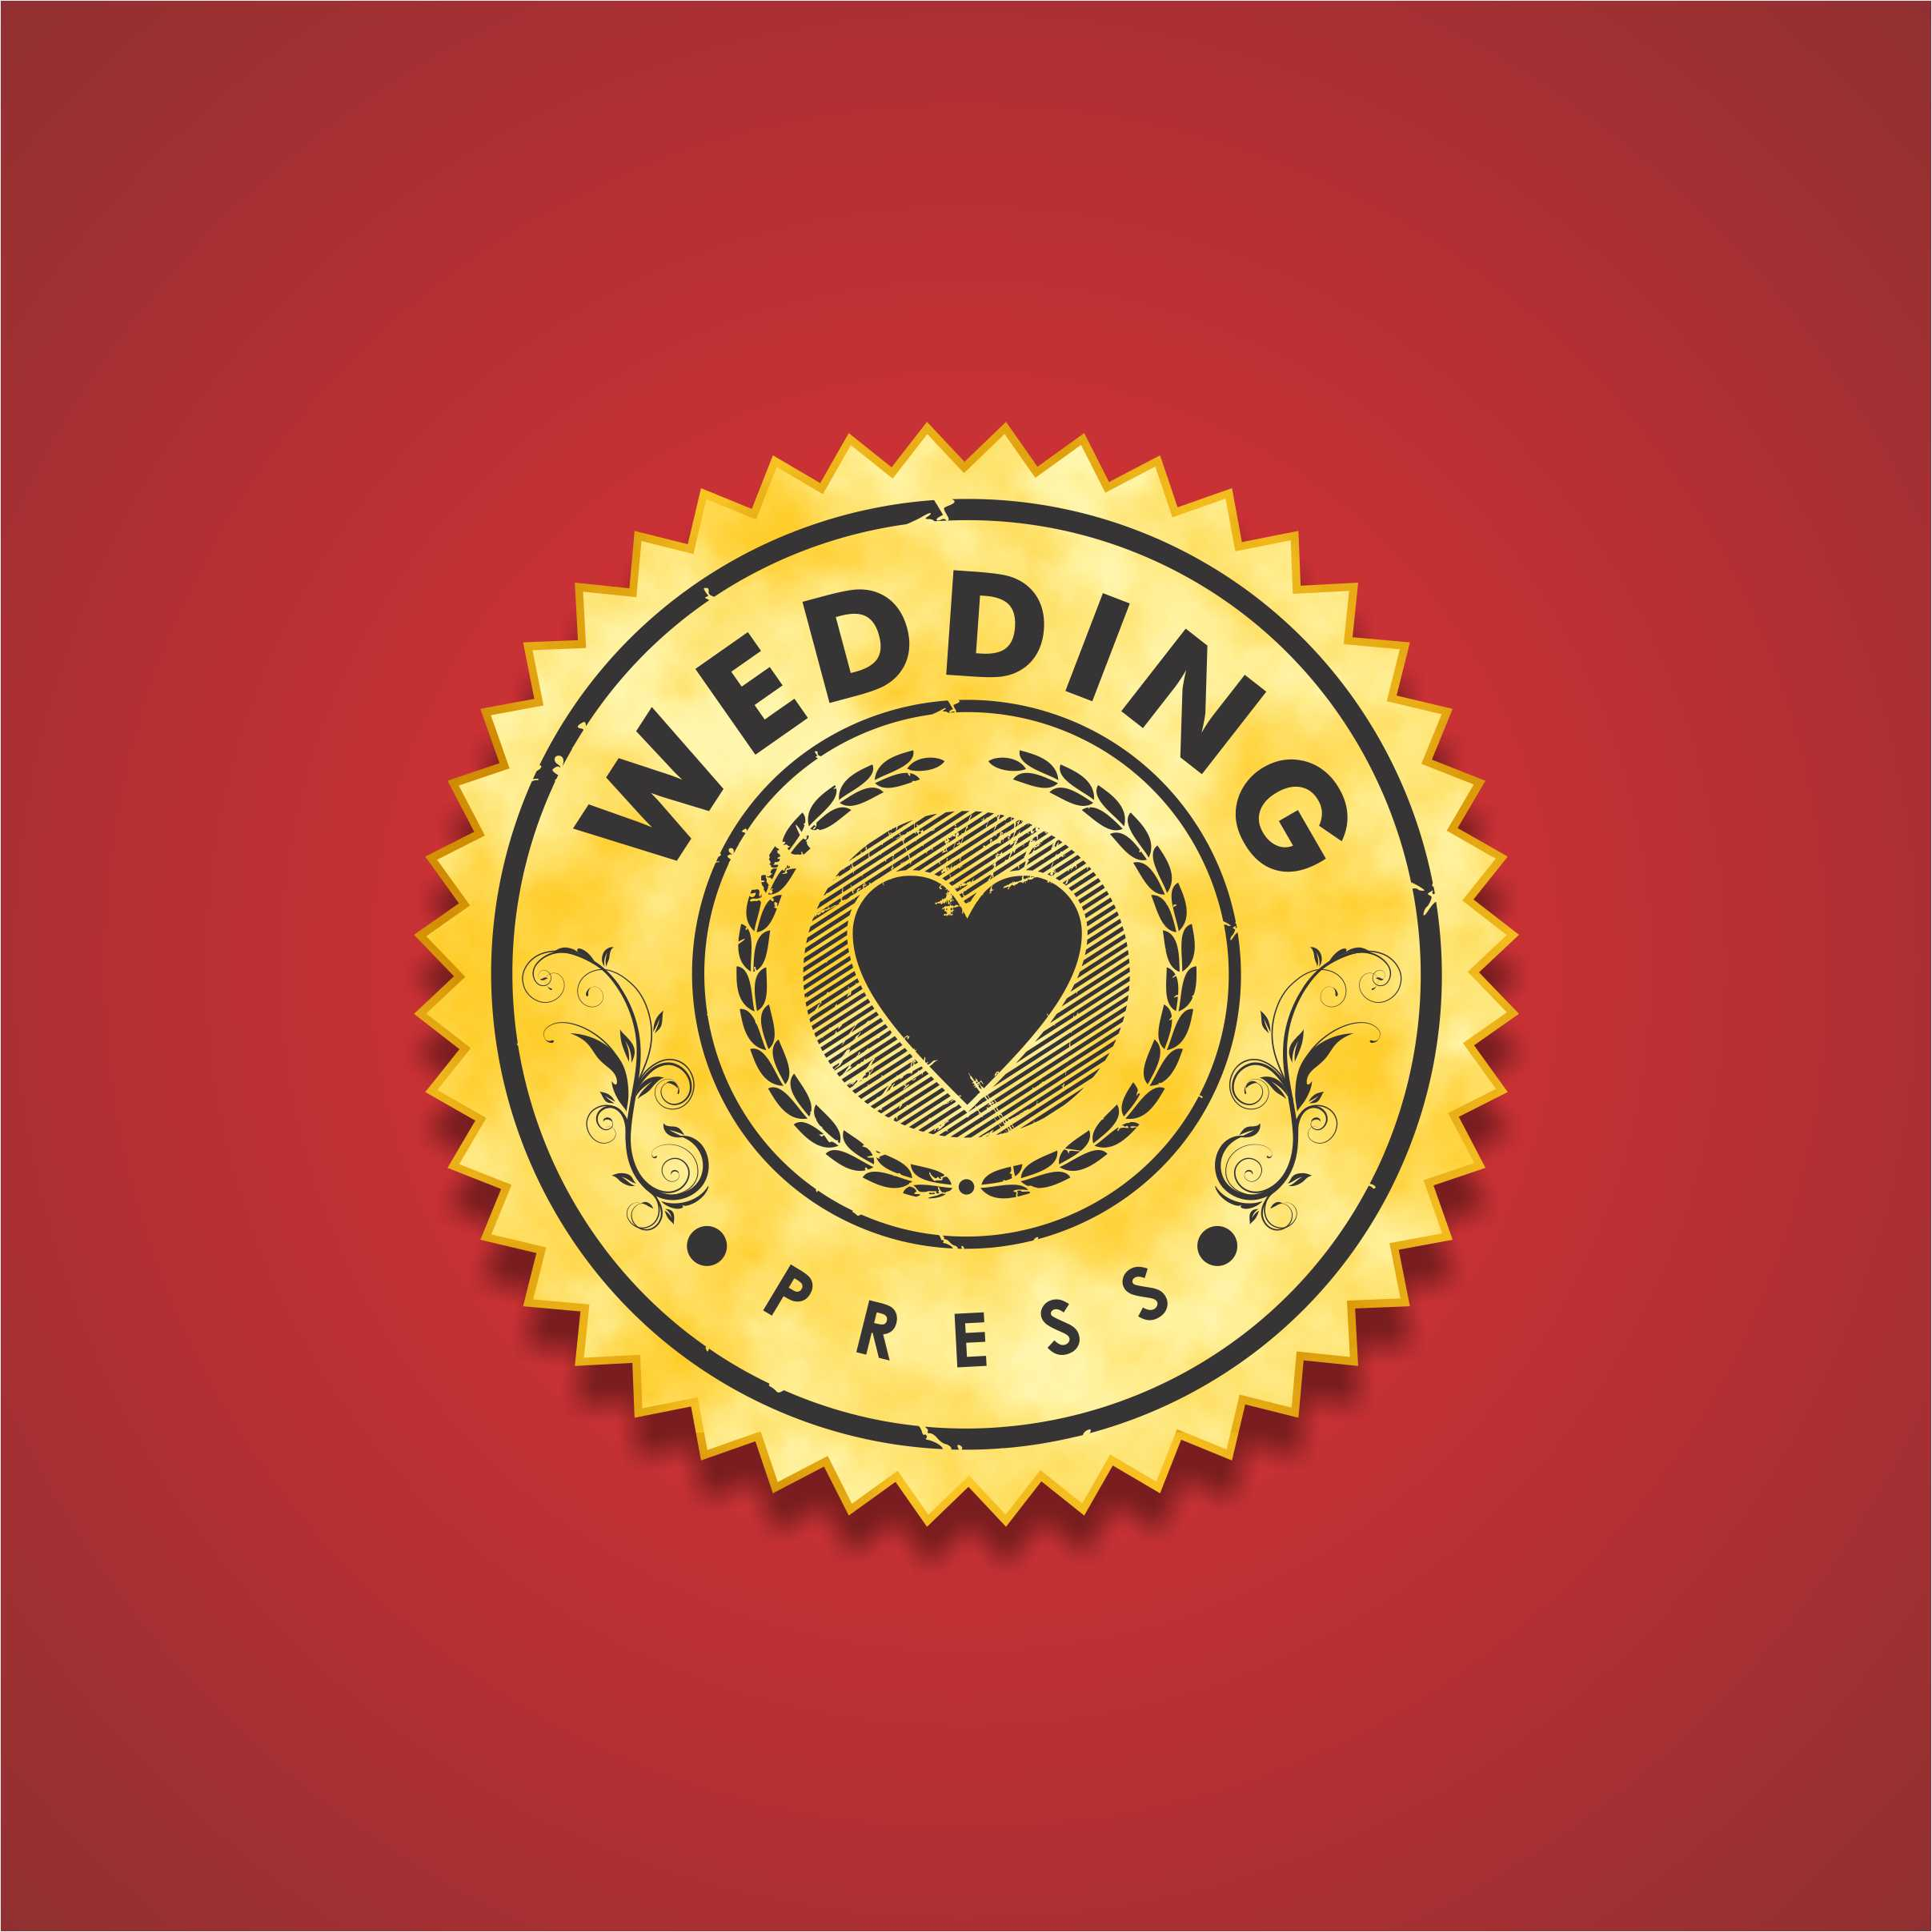 Logo Design by Sandeep Parab - Entry No. 113 in the Logo Design Contest Wedding Writes Logo Design.